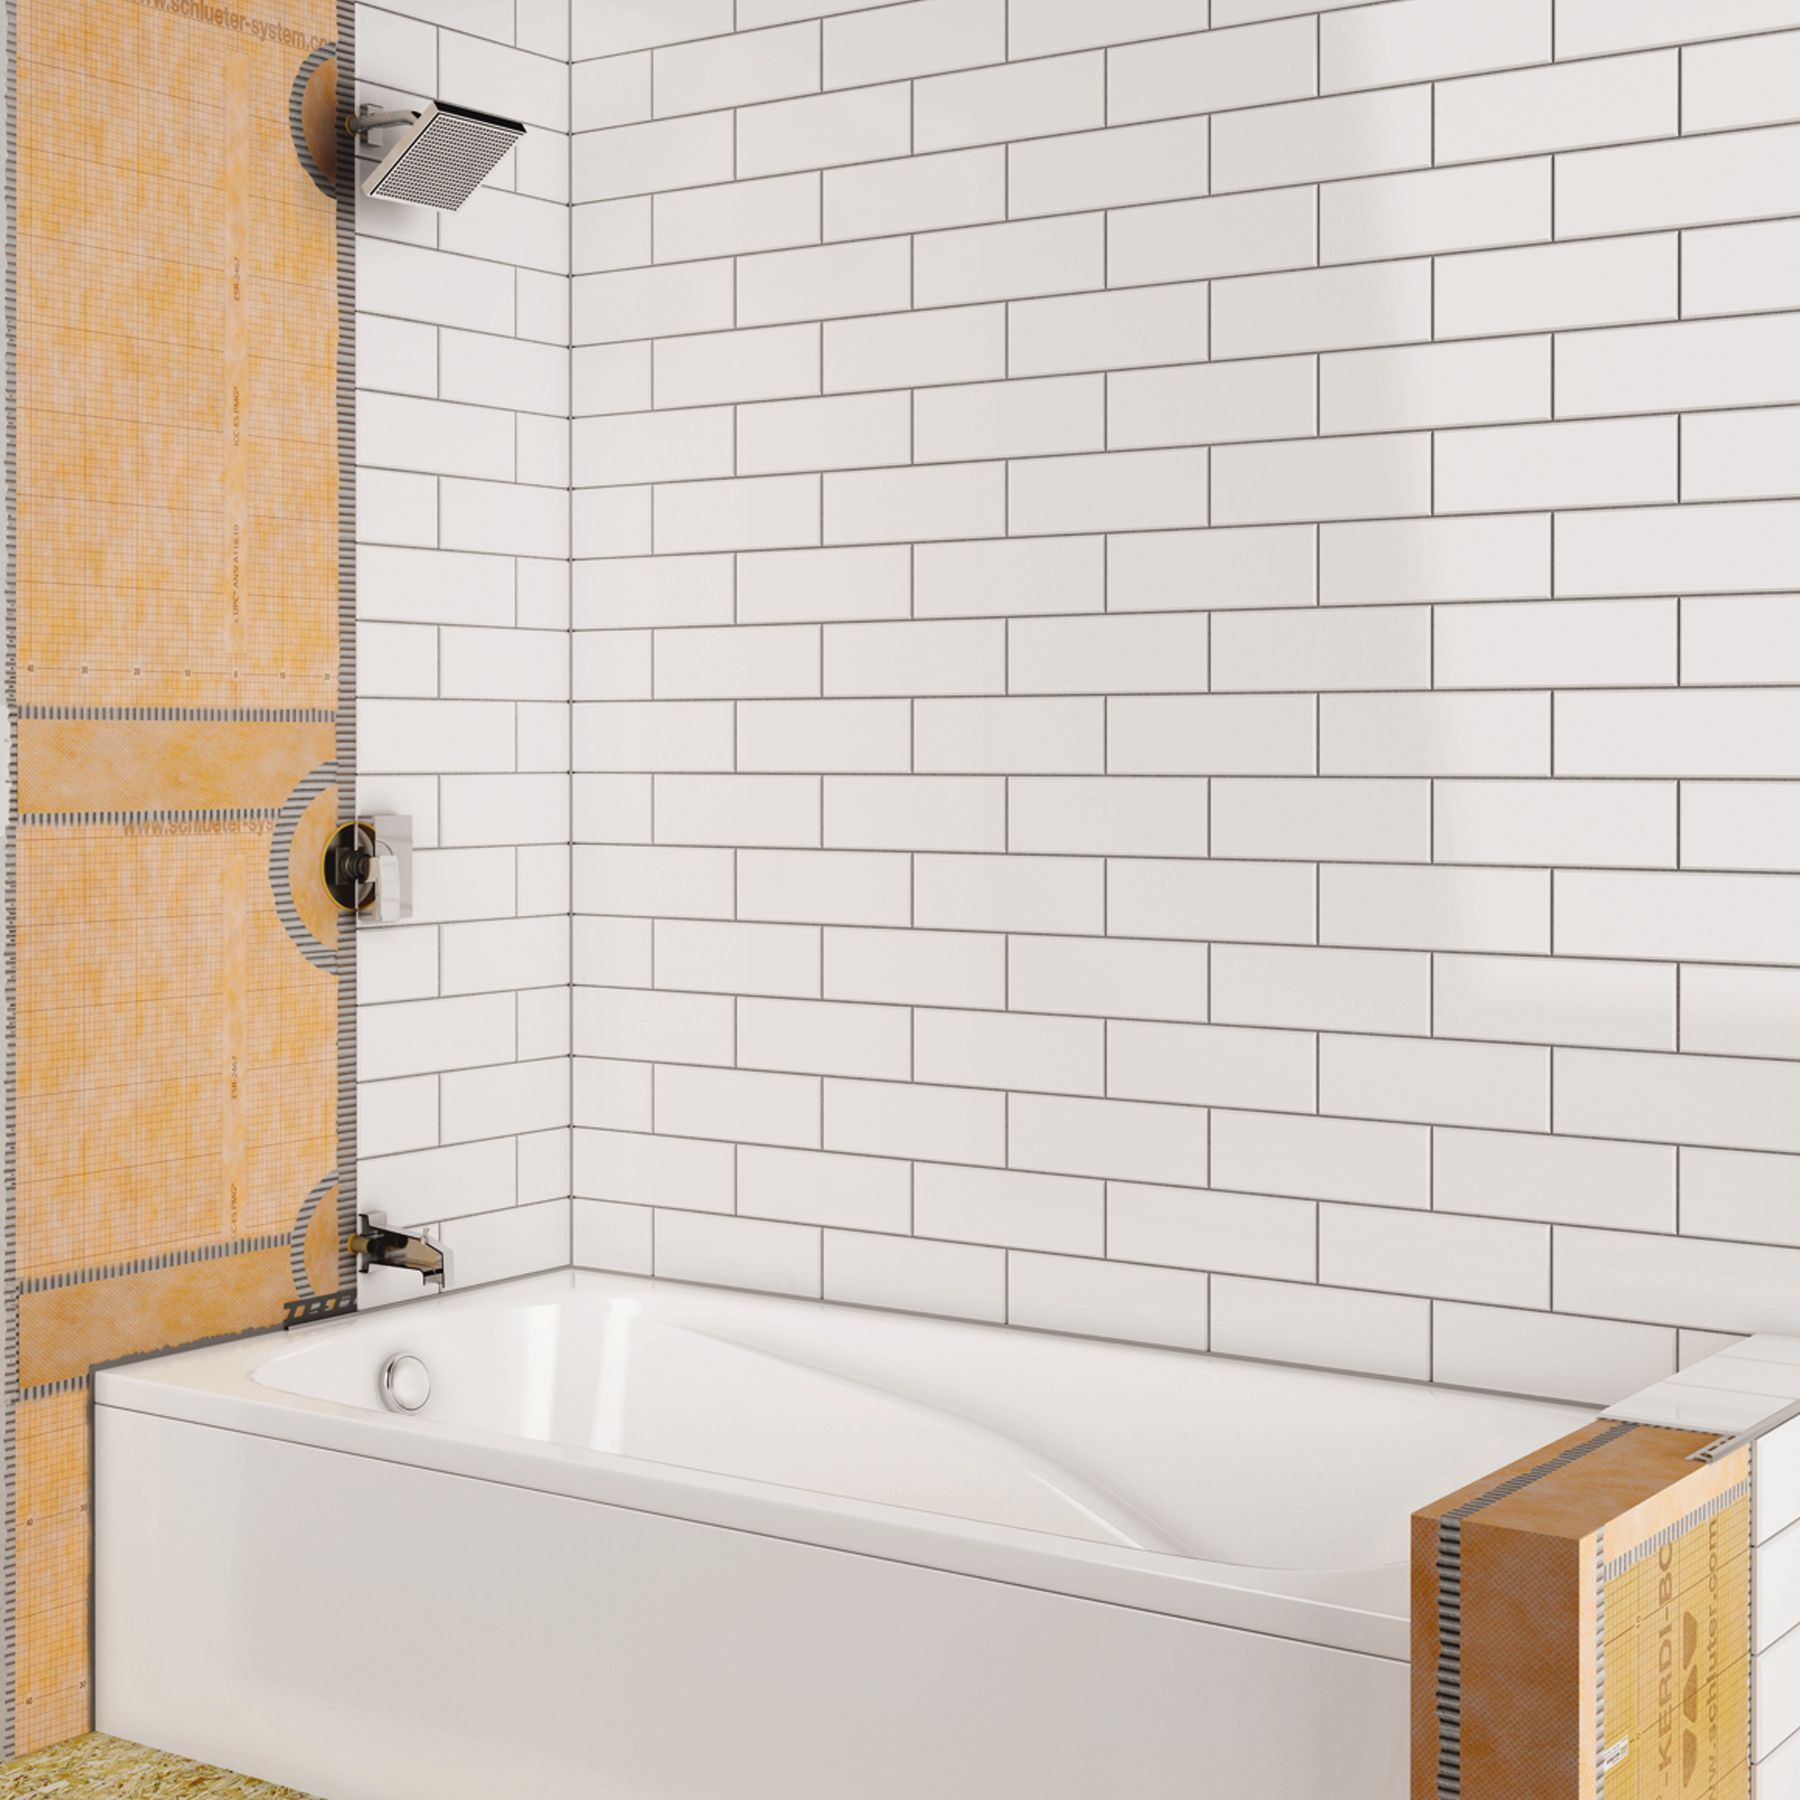 Shower with bathtub for Crossing the shallows tile mural